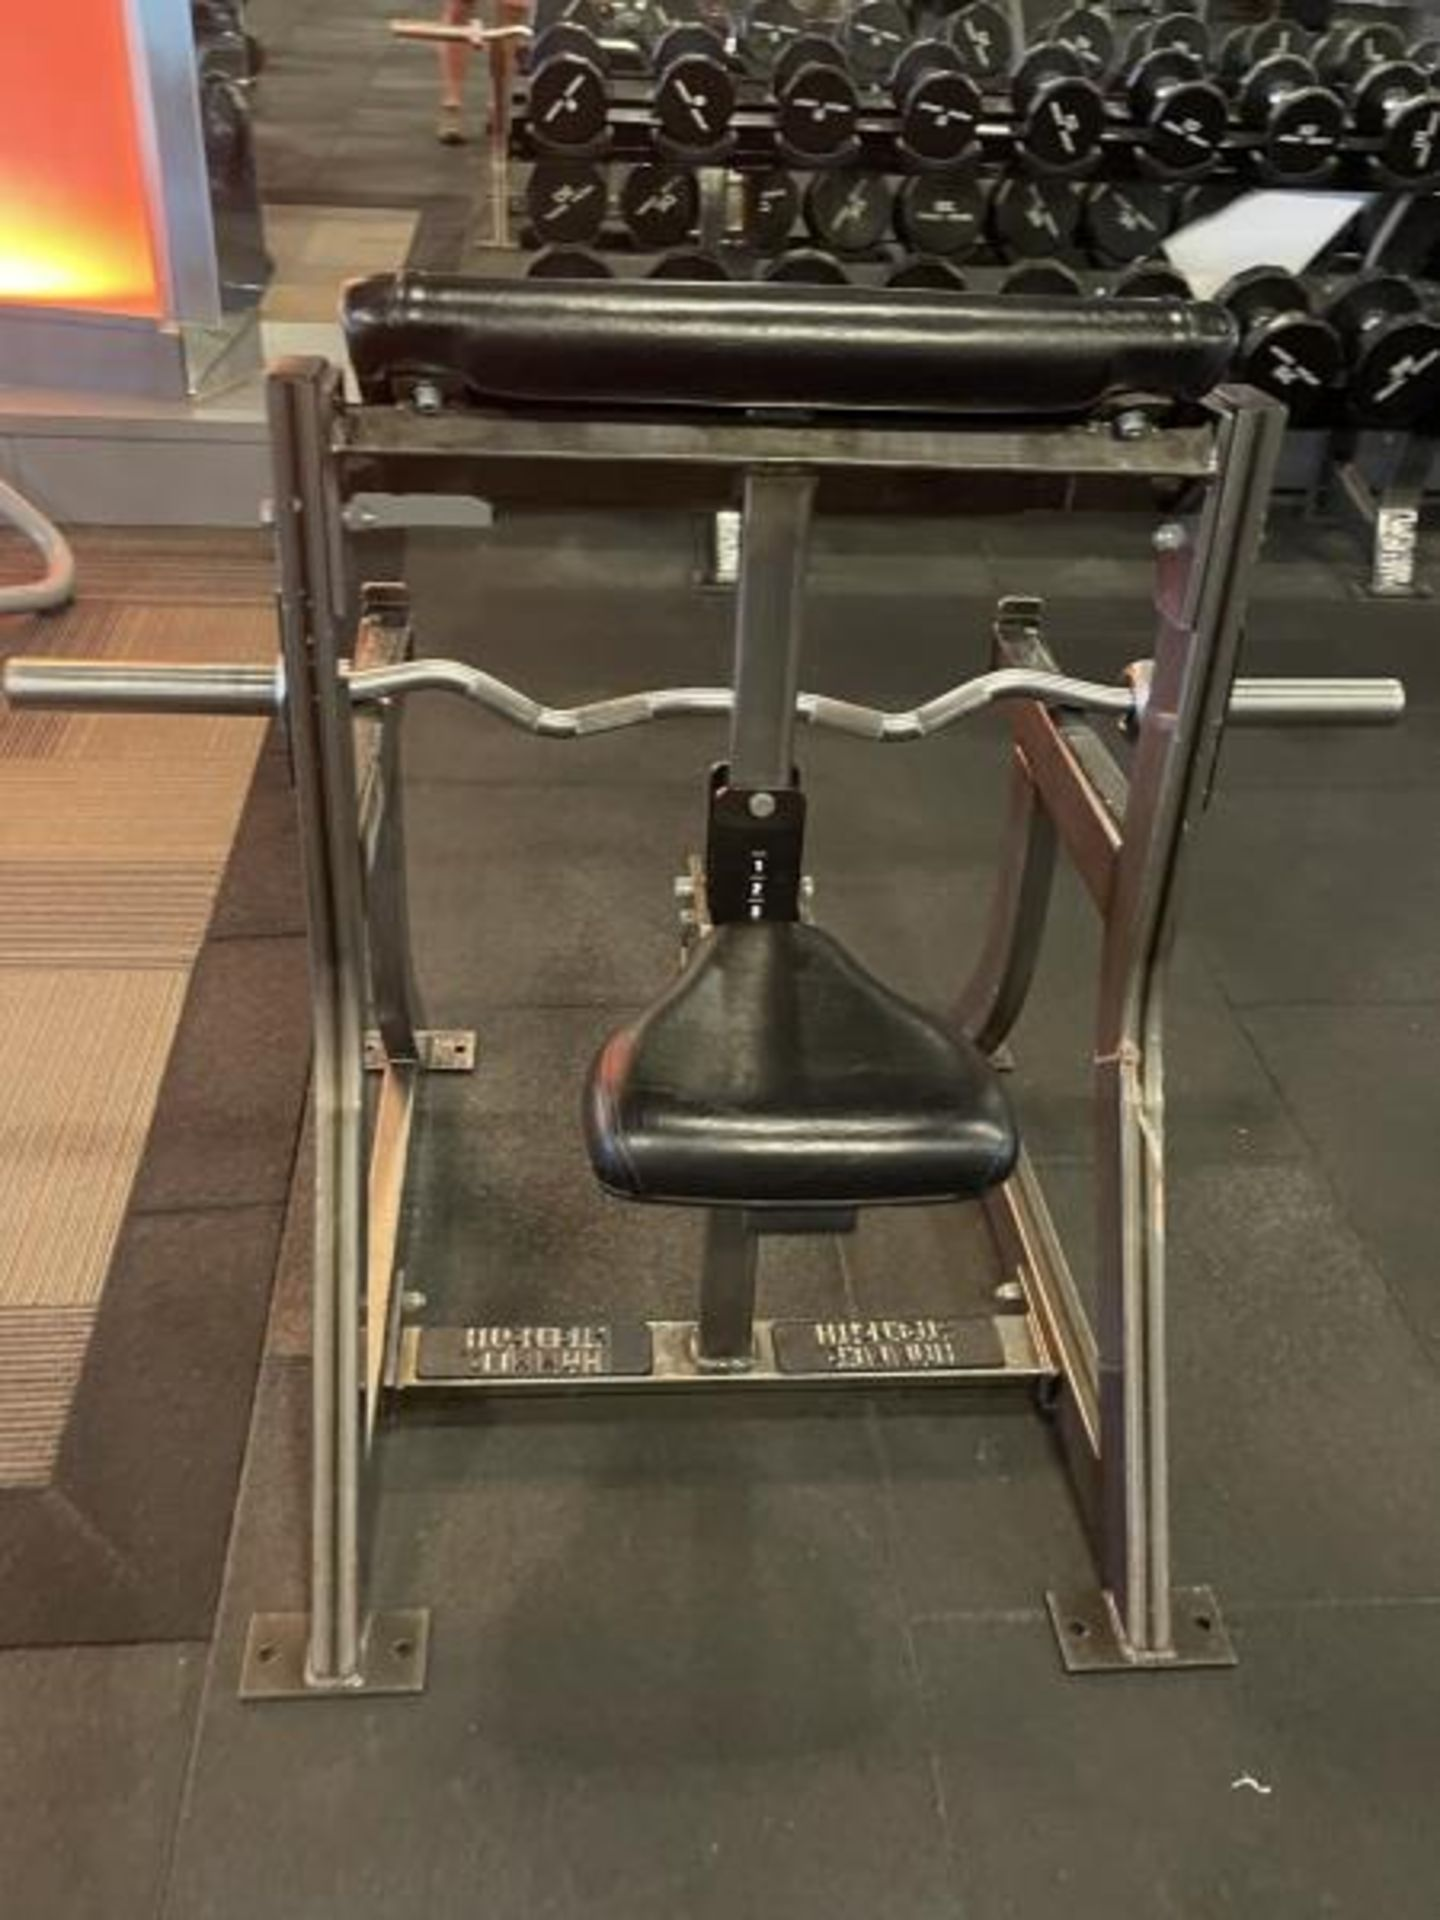 Hammer Strength Bicep/Preacher Curl Bench with Curl Bar M:B01 - Image 4 of 4